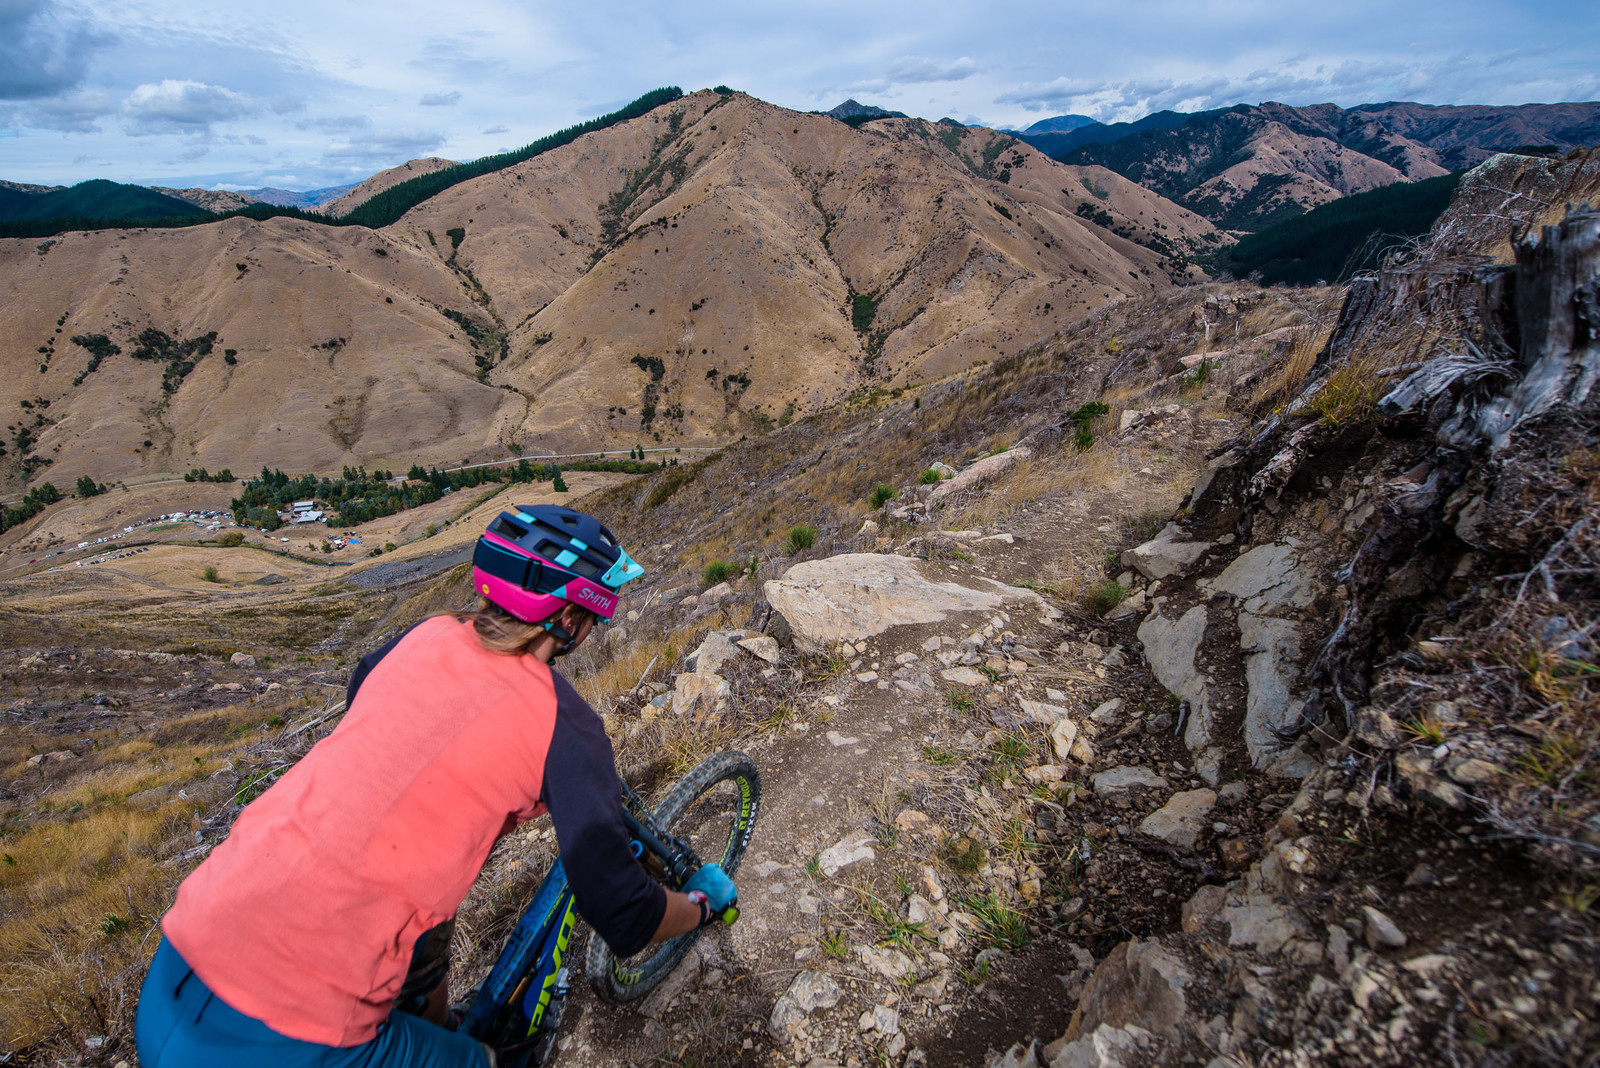 NZenduro19 day 3 DShaw-8353 - 2019 NZ Enduro Day 3 Photo Gallery - Mountain Biking Pictures - Vital MTB